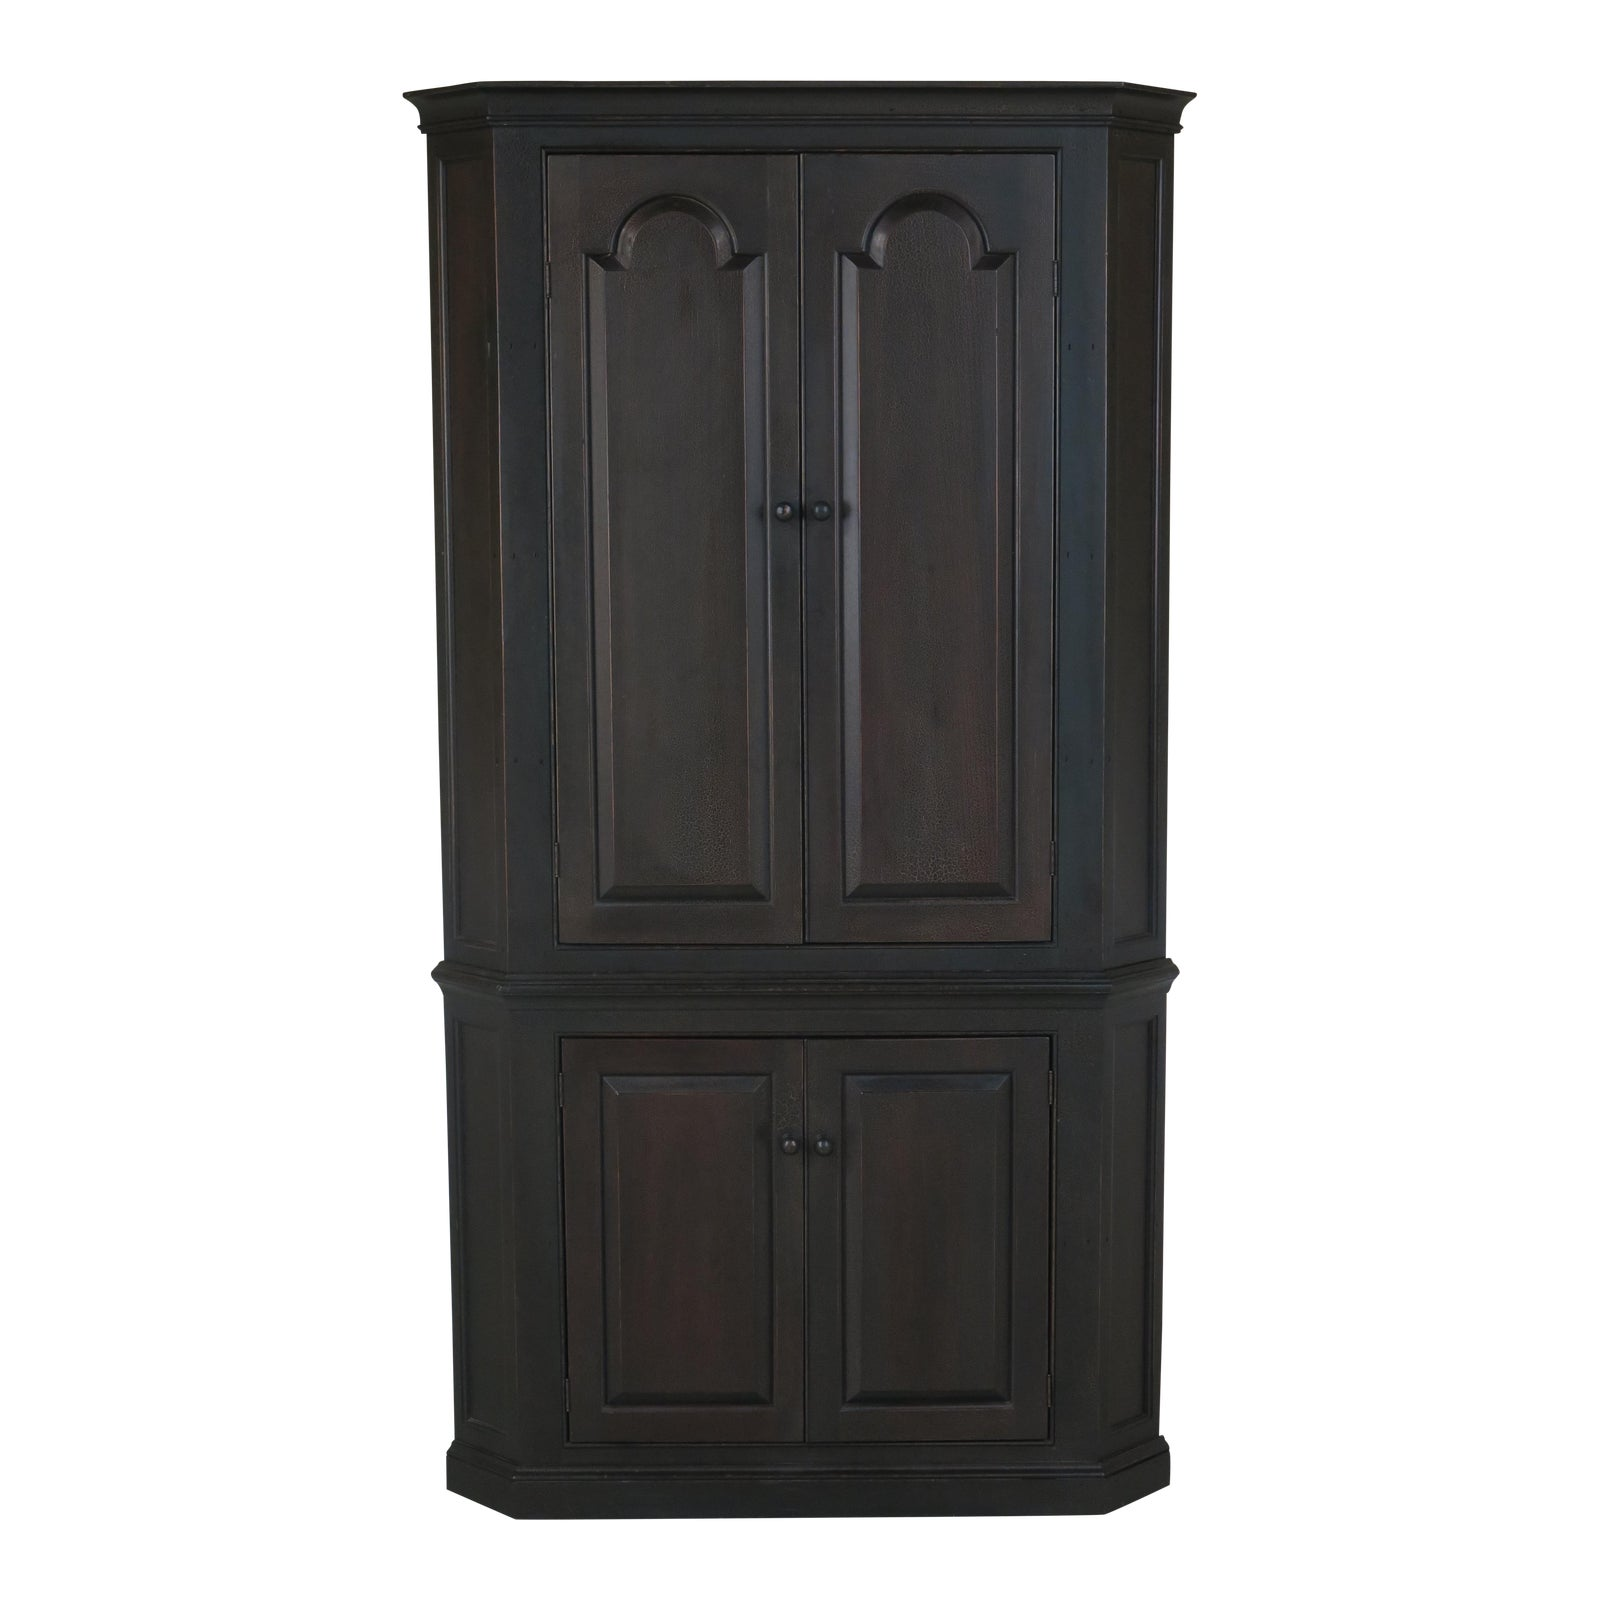 Dr Dimes Black Crackle Finish Primitive Country Corner Cabinet -